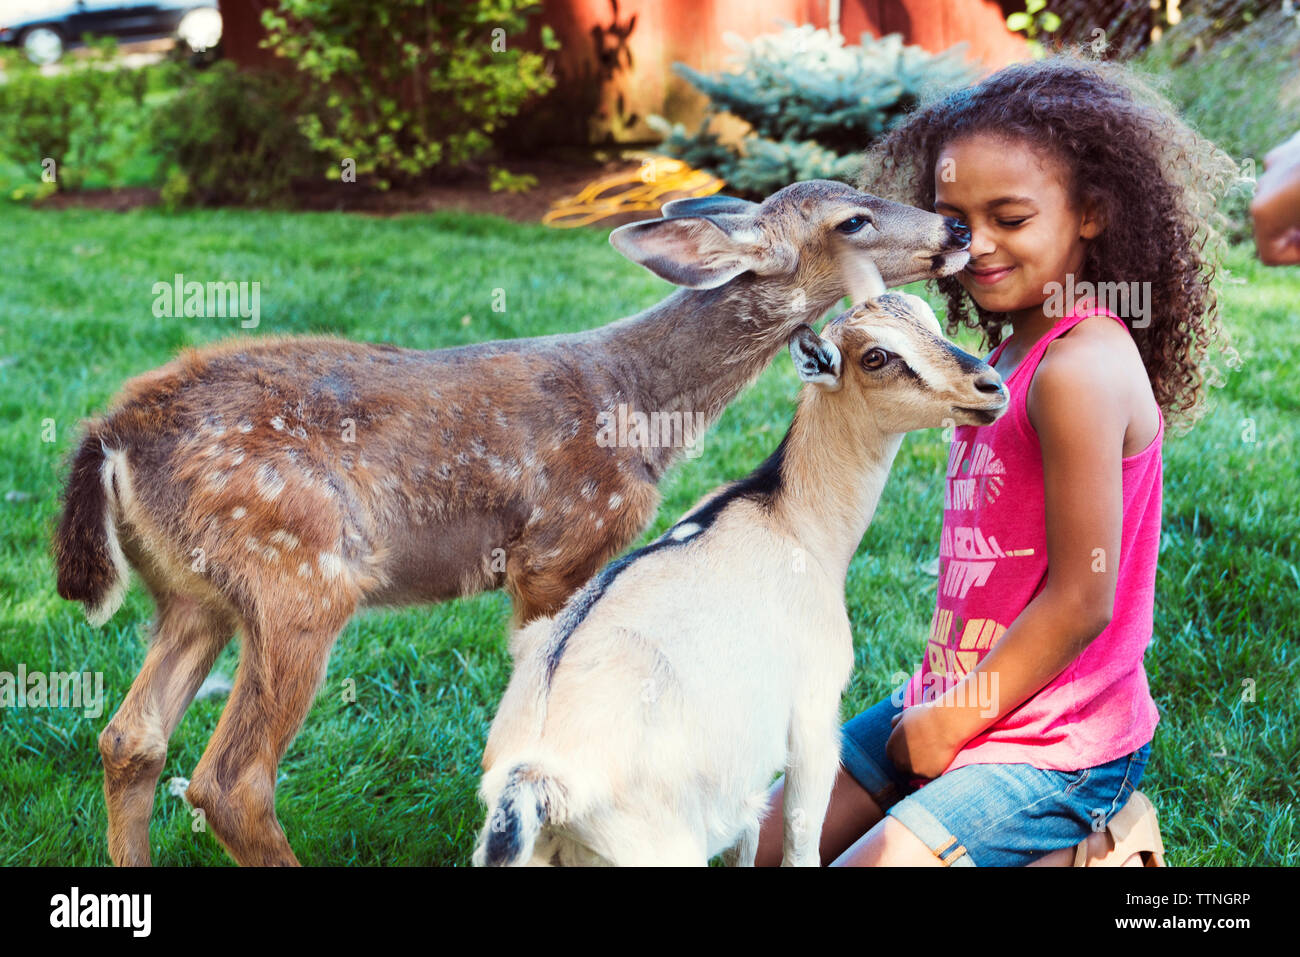 Fawn licking girl kneeling by kid goat on field - Stock Image